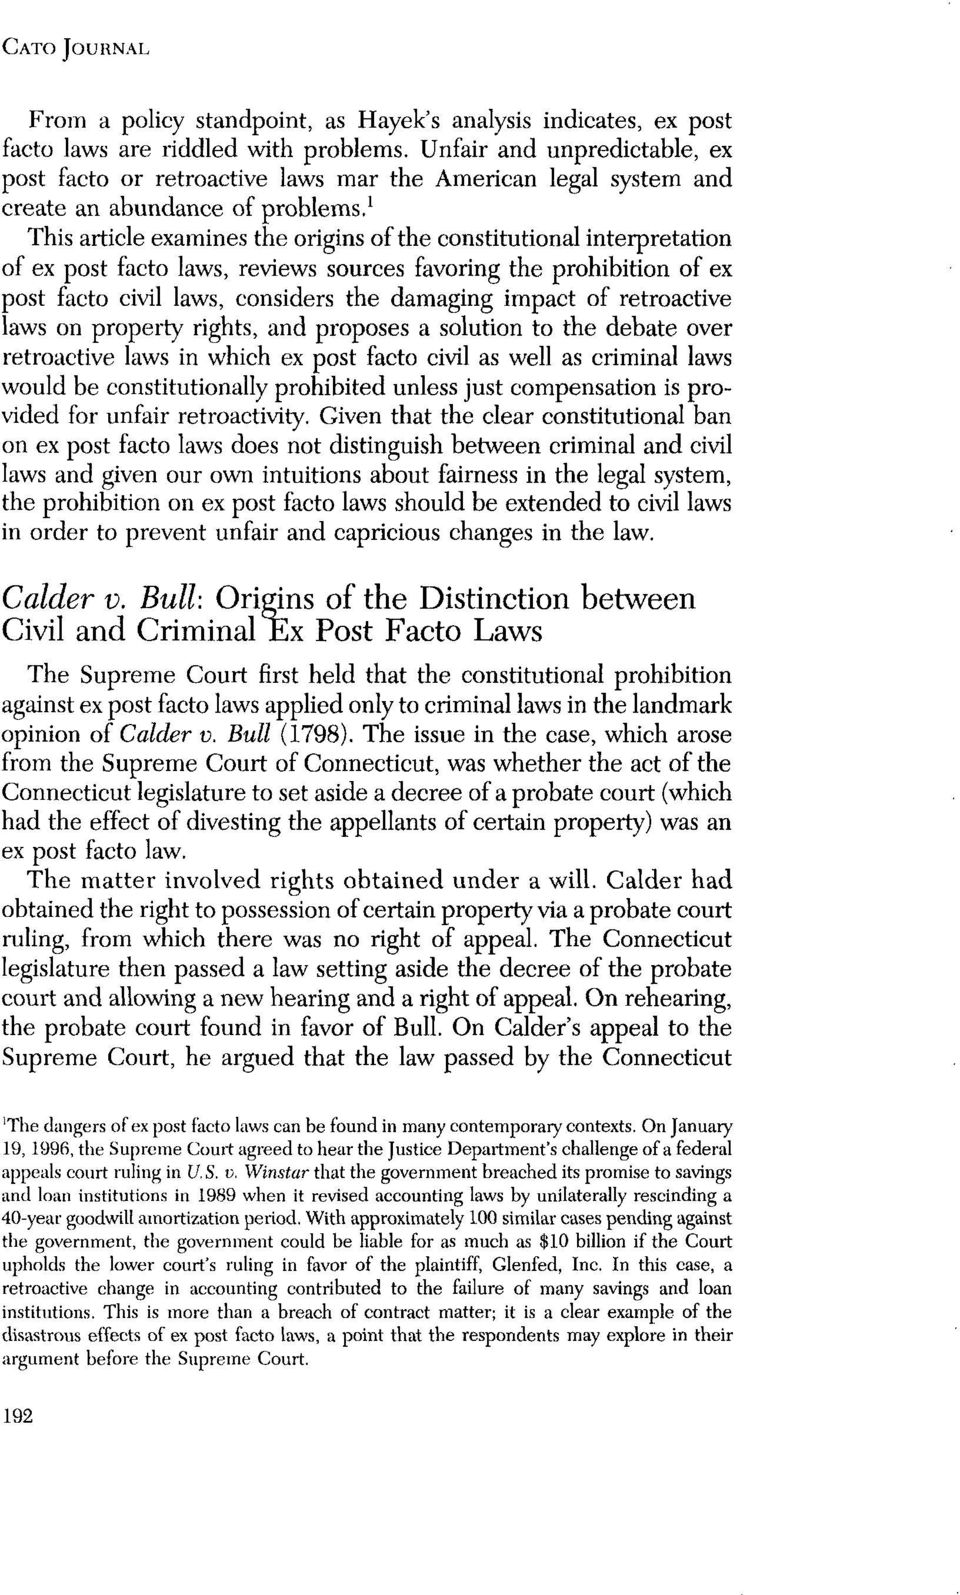 This article examines the origins of the constitutional interpretation of ex post facto laws, reviews sources favoring the prohibition of ex post facto civil laws, considers the damaging impact of